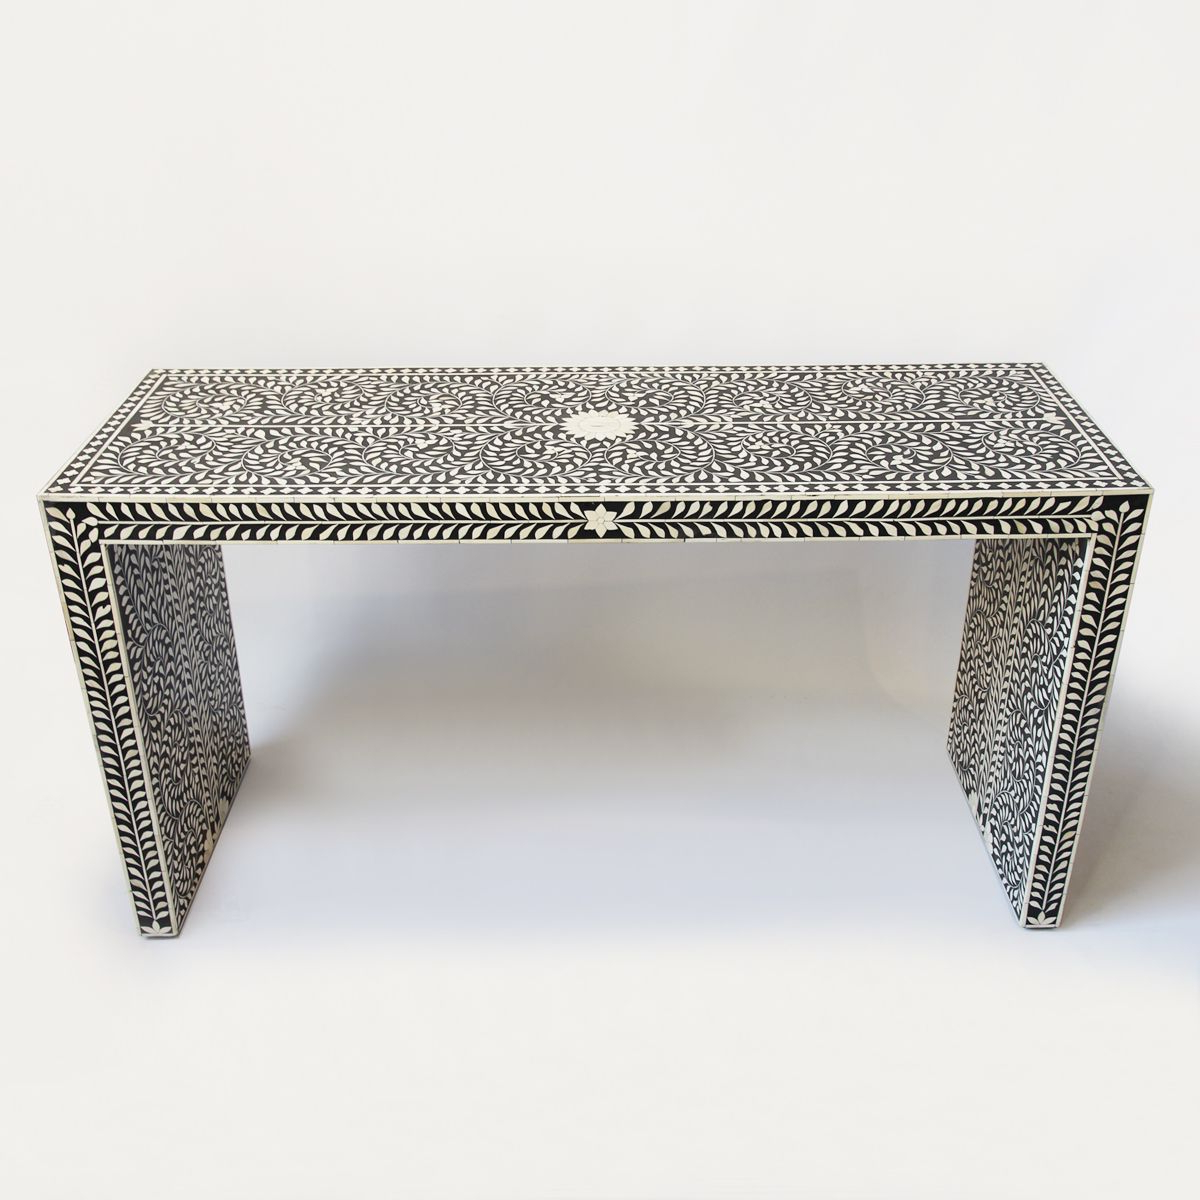 Bone Inlay Black And White Waterfall Console Table. Beautiful Intended For Black And White Inlay Console Tables (Gallery 16 of 20)